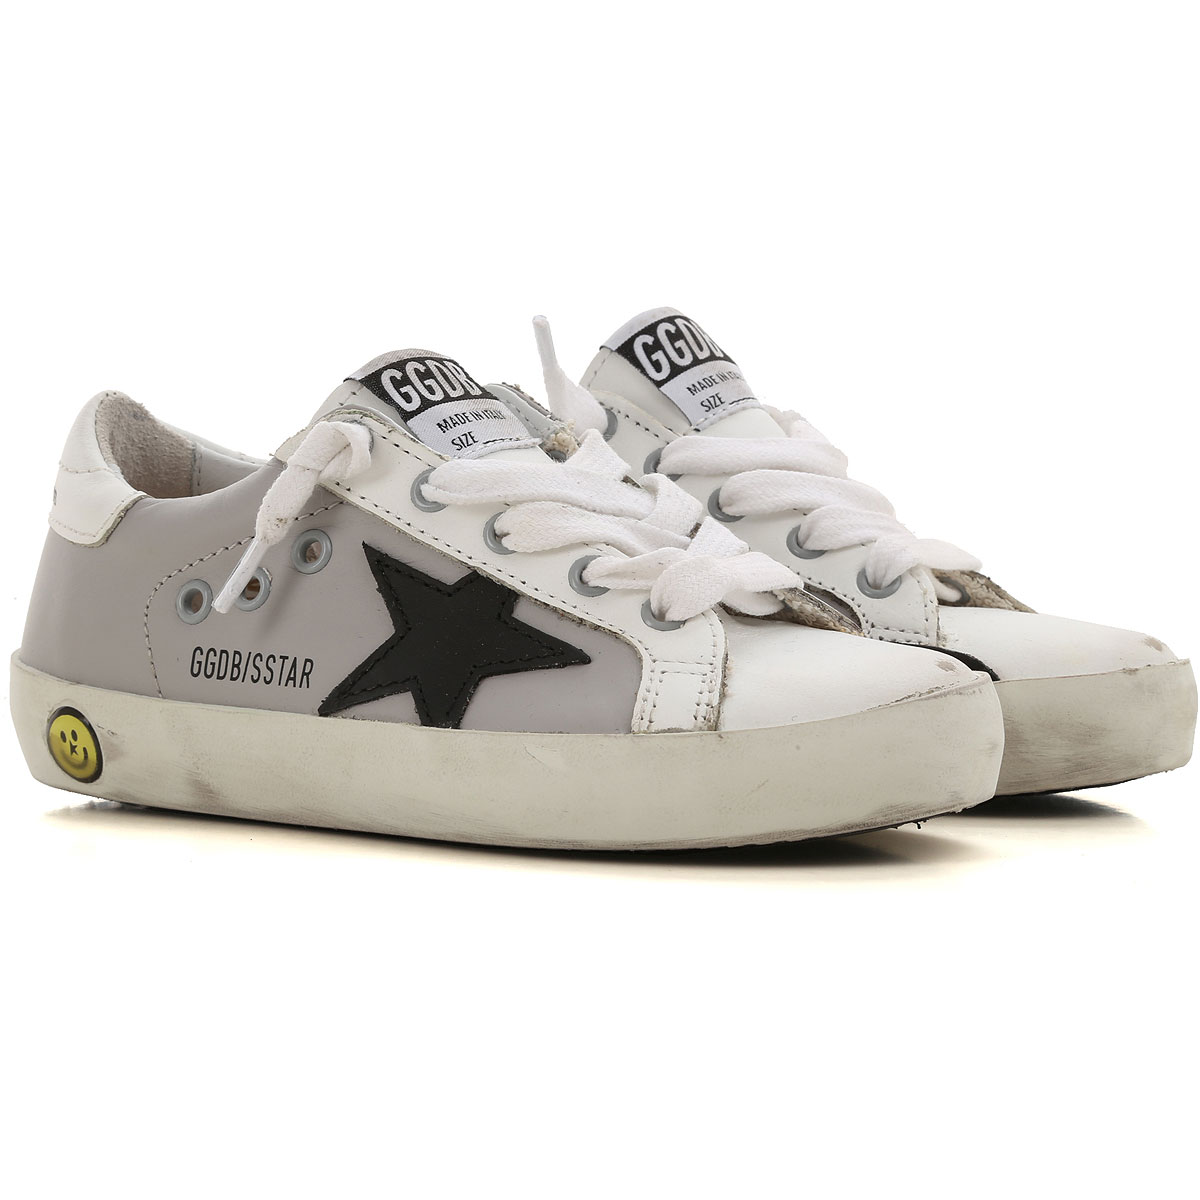 Image of Golden Goose Sneakers, Grey, Calf Leather, 2017, 24 25 26 27 28 29 30 31 32 33 34 35